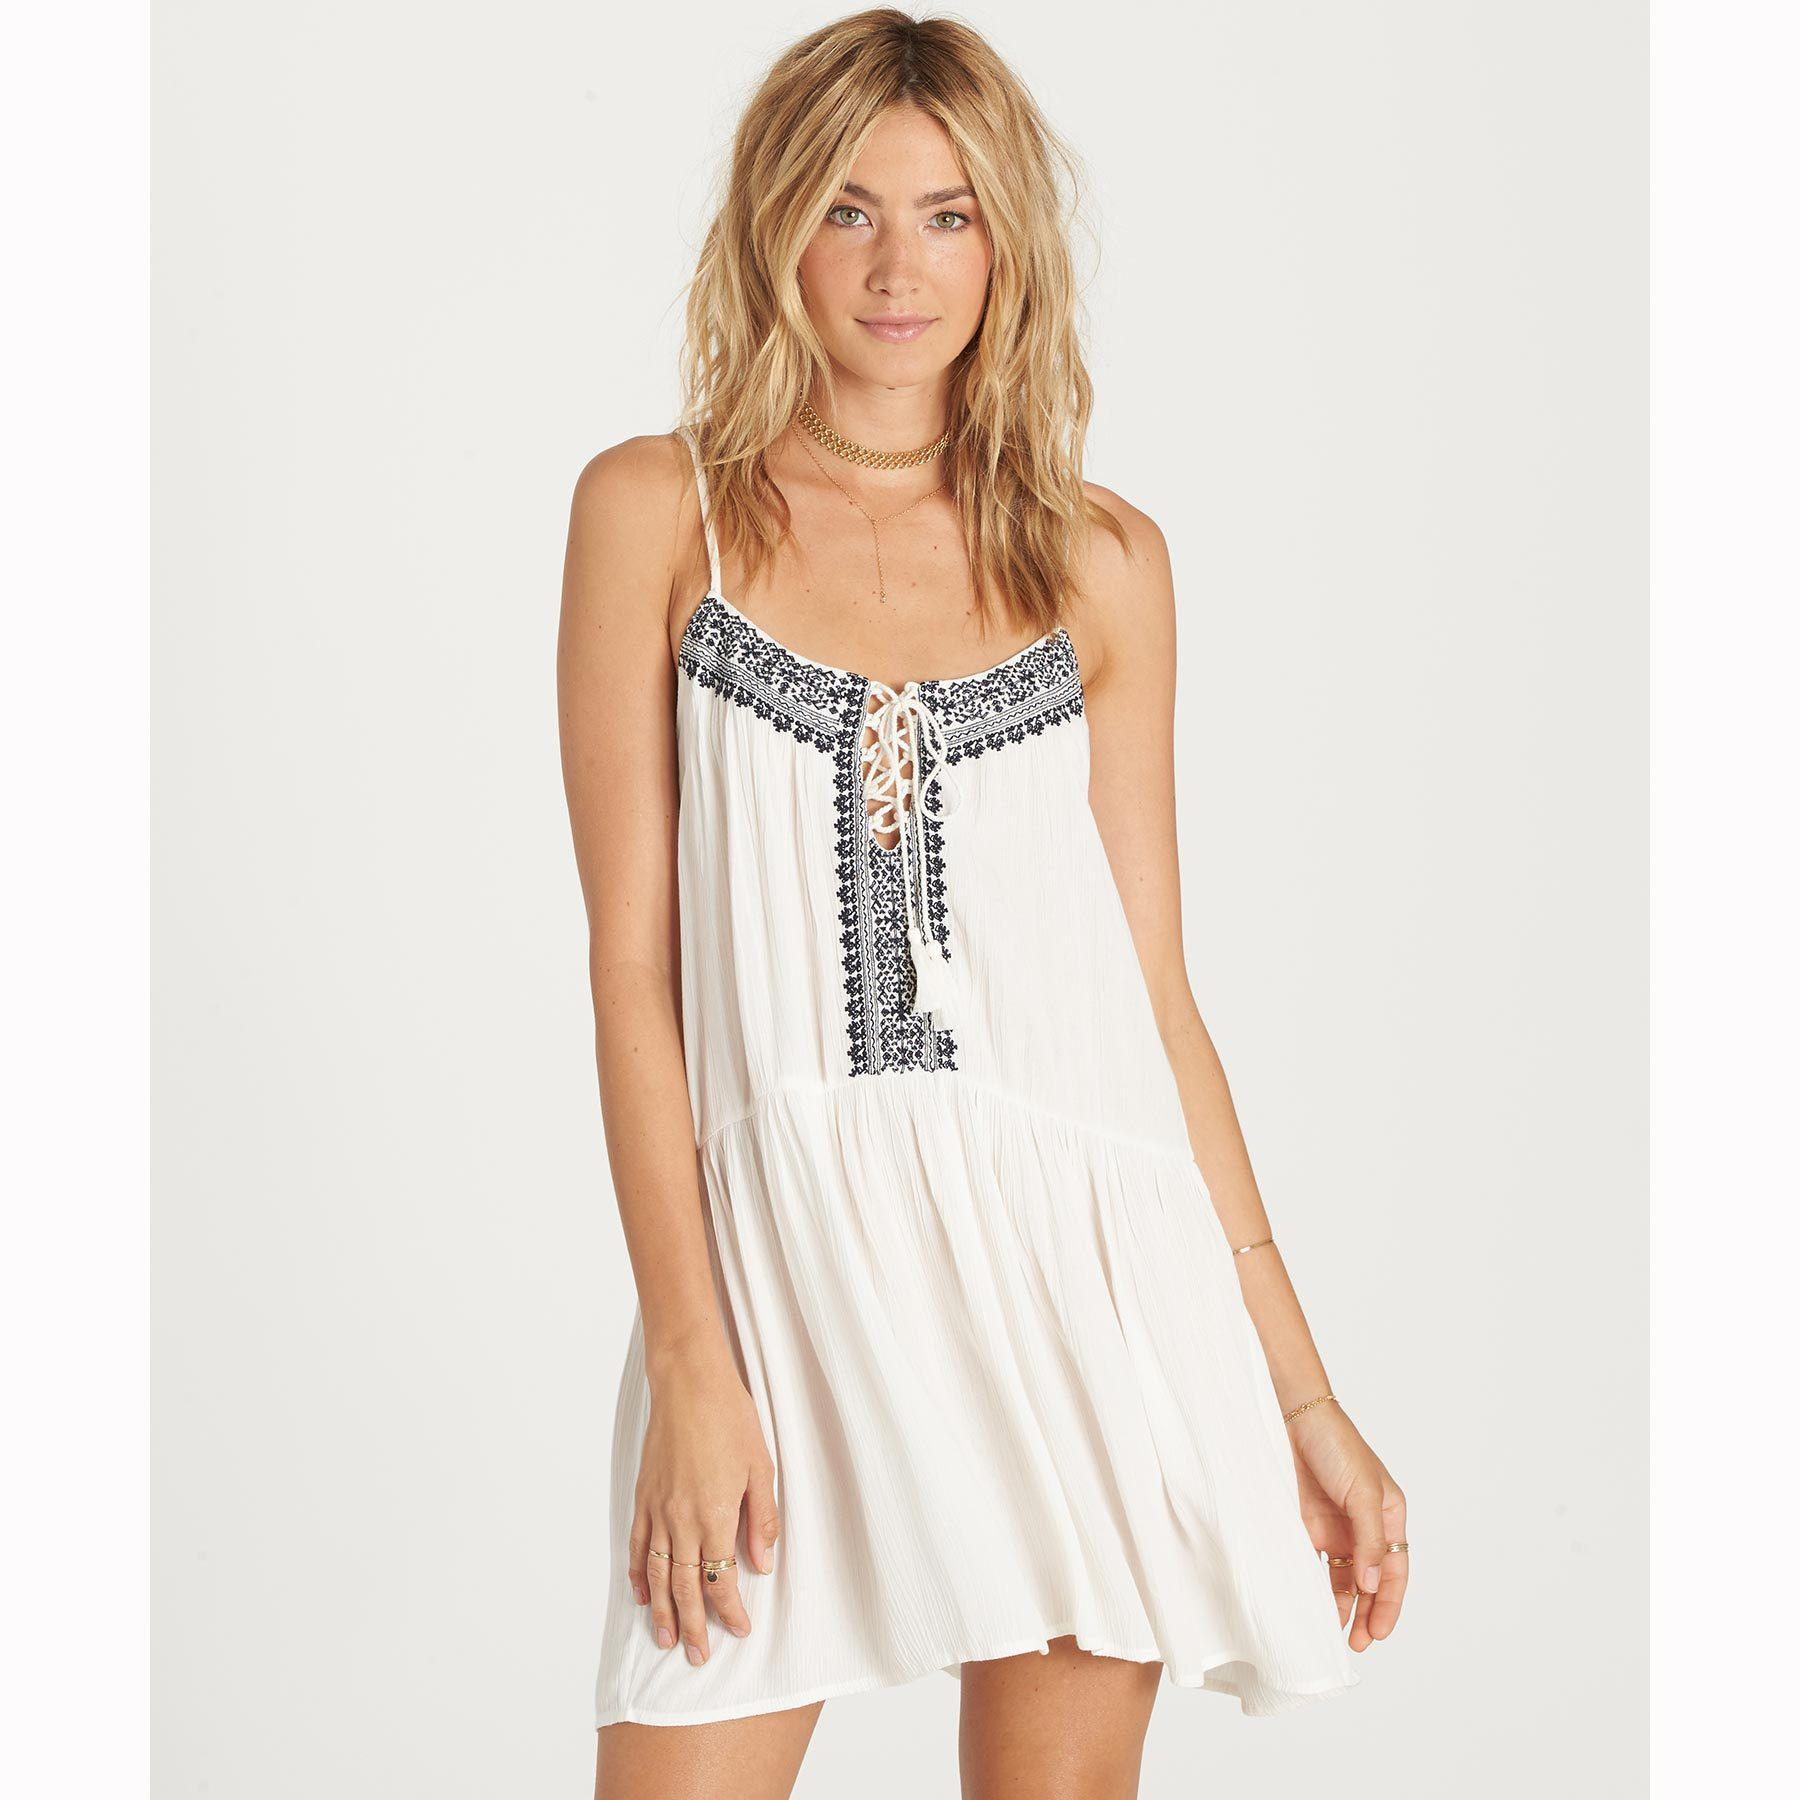 Minkpink daiquiri dress white pants